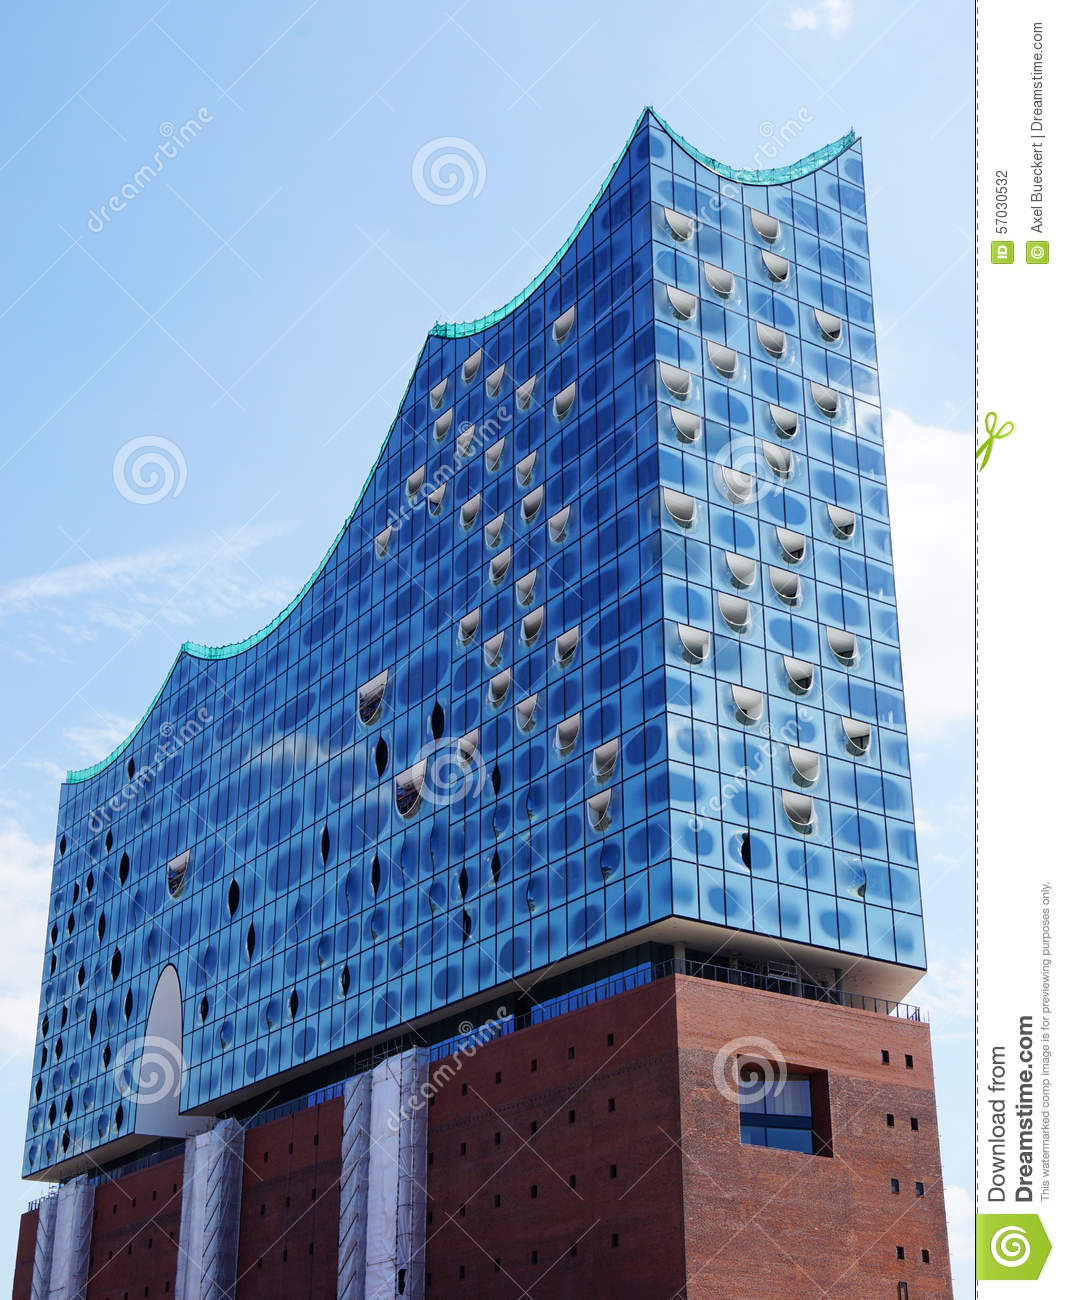 Elbphilharmonie In Hamburg Germany Stock Photo.